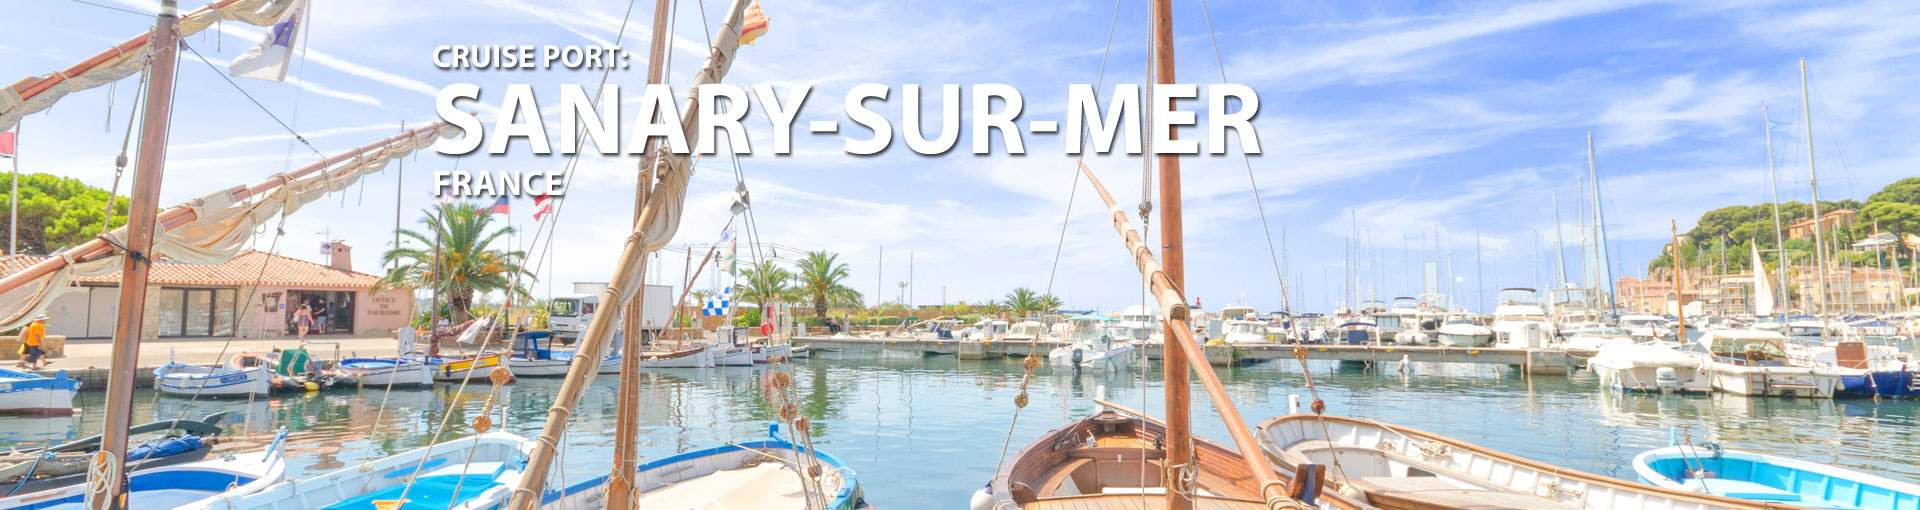 Cruises to Sanary-Sur-Mer, France